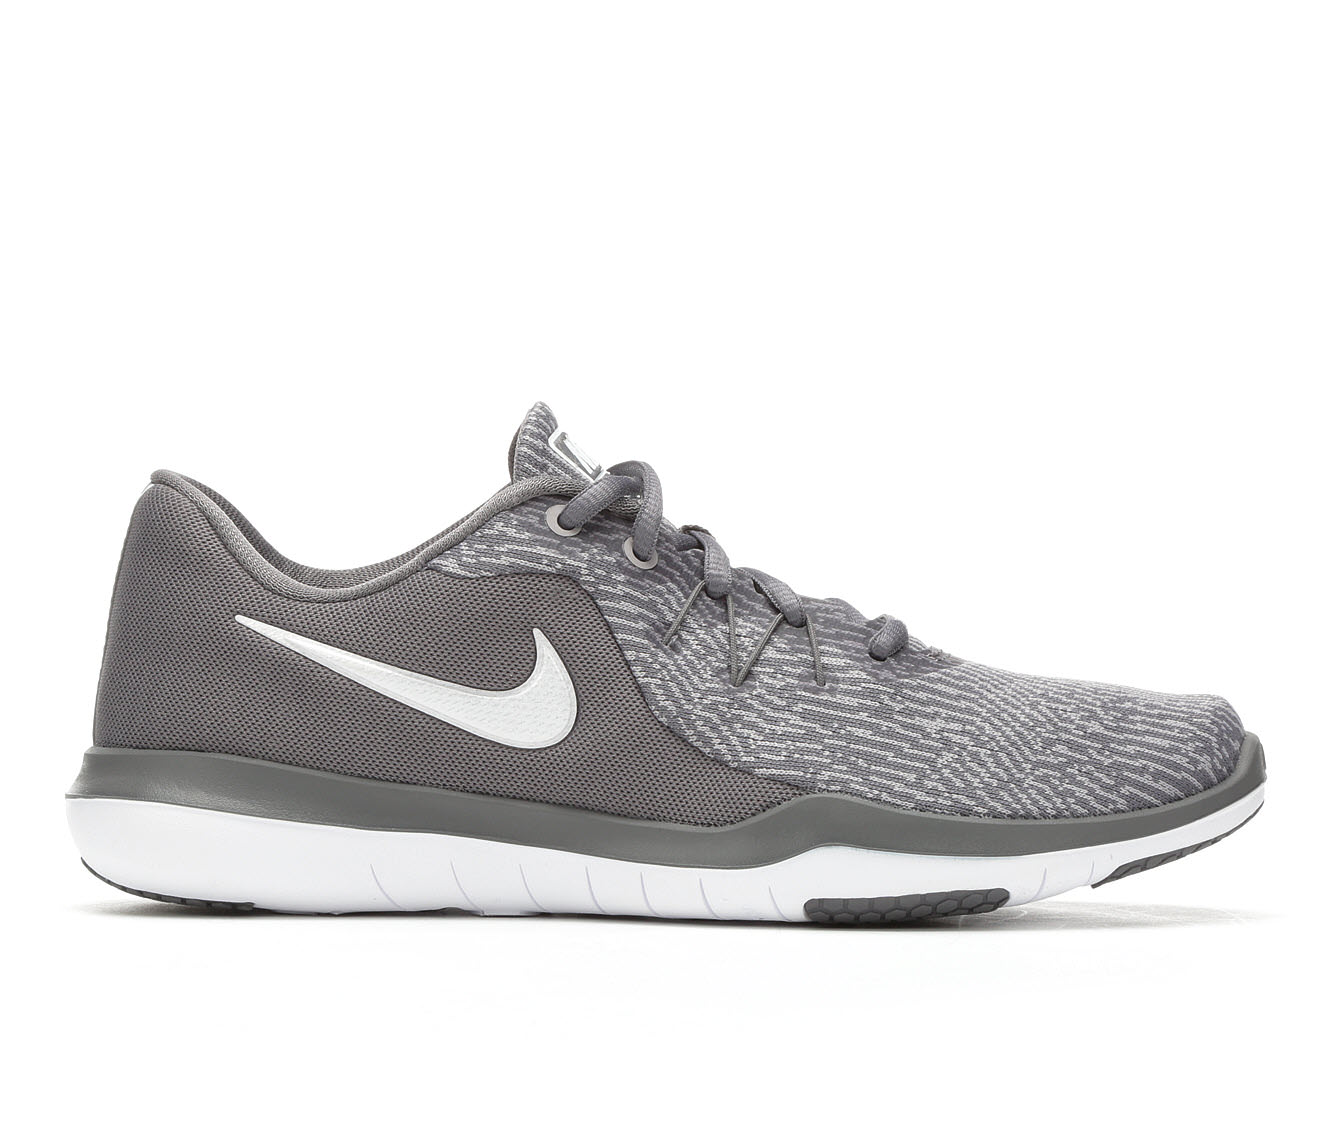 Women's Nike Flex Supreme TR 6 Training Shoe (Grey - Size 11) 1702058